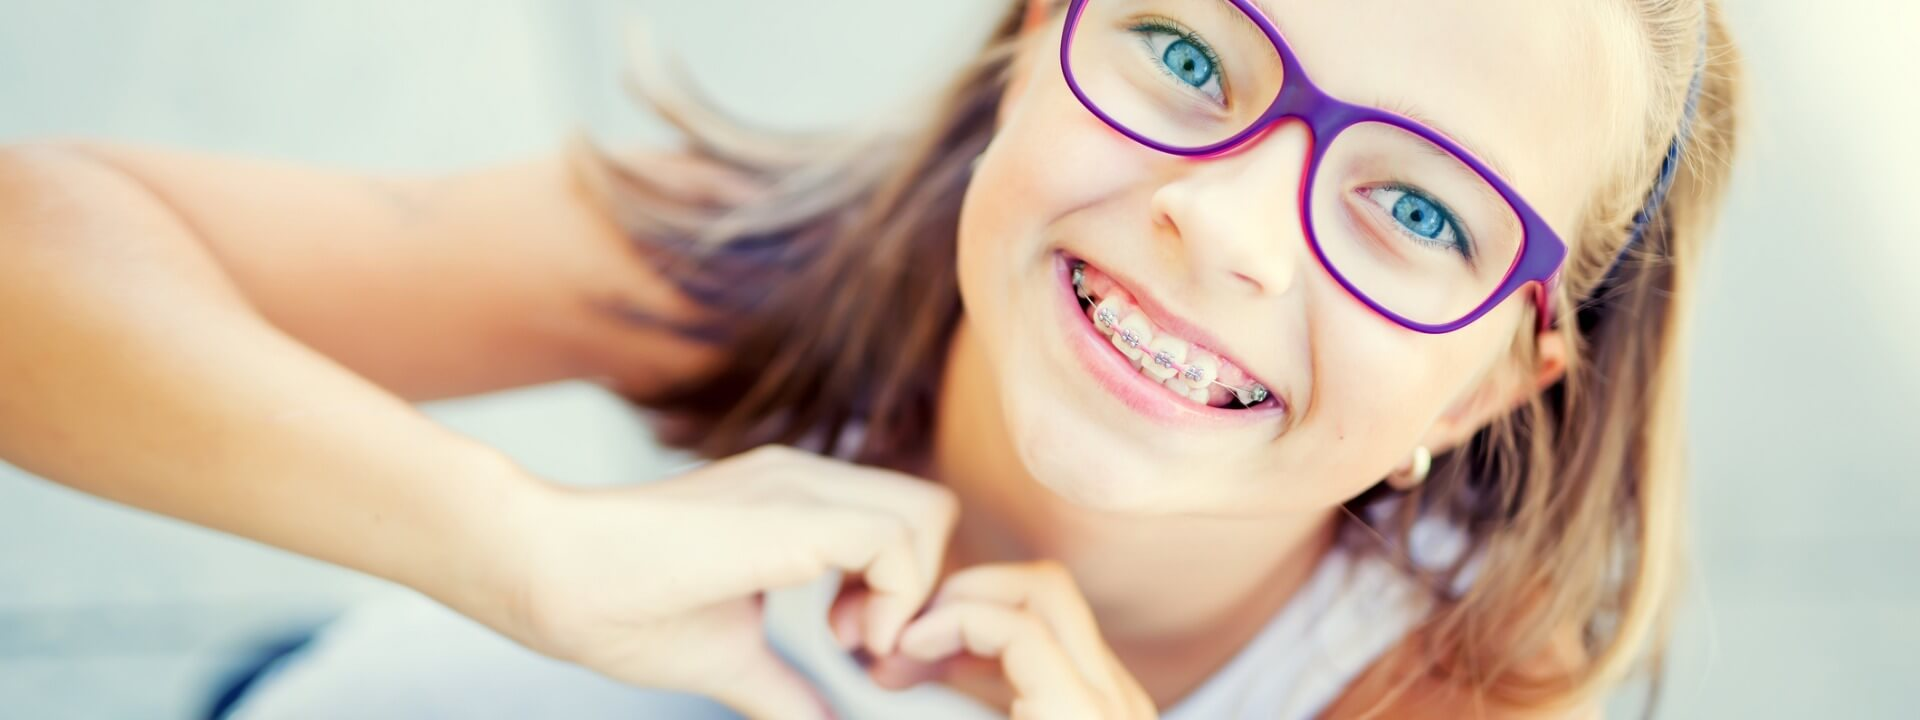 smiling-little-girl-with-dental-braces-and-glasses-showing-heart-with-picture-id842727584